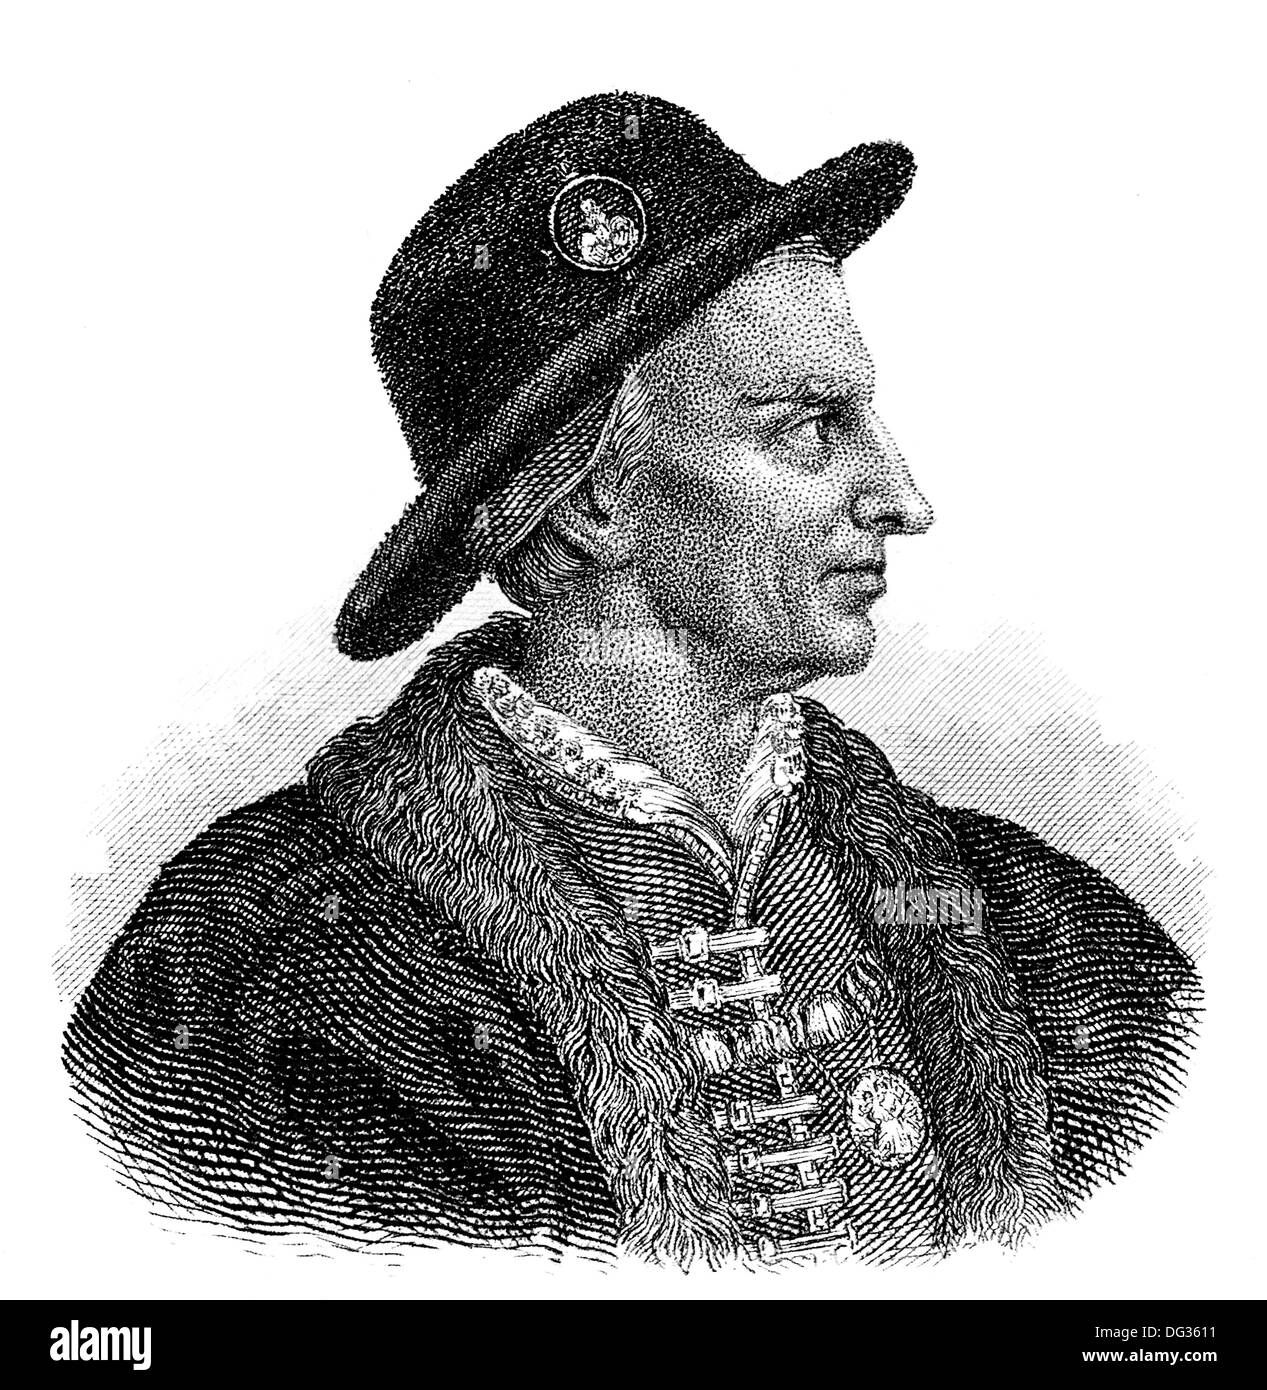 Louis XI, 1423-1483, called the Prudent, King of France, Stock Photo